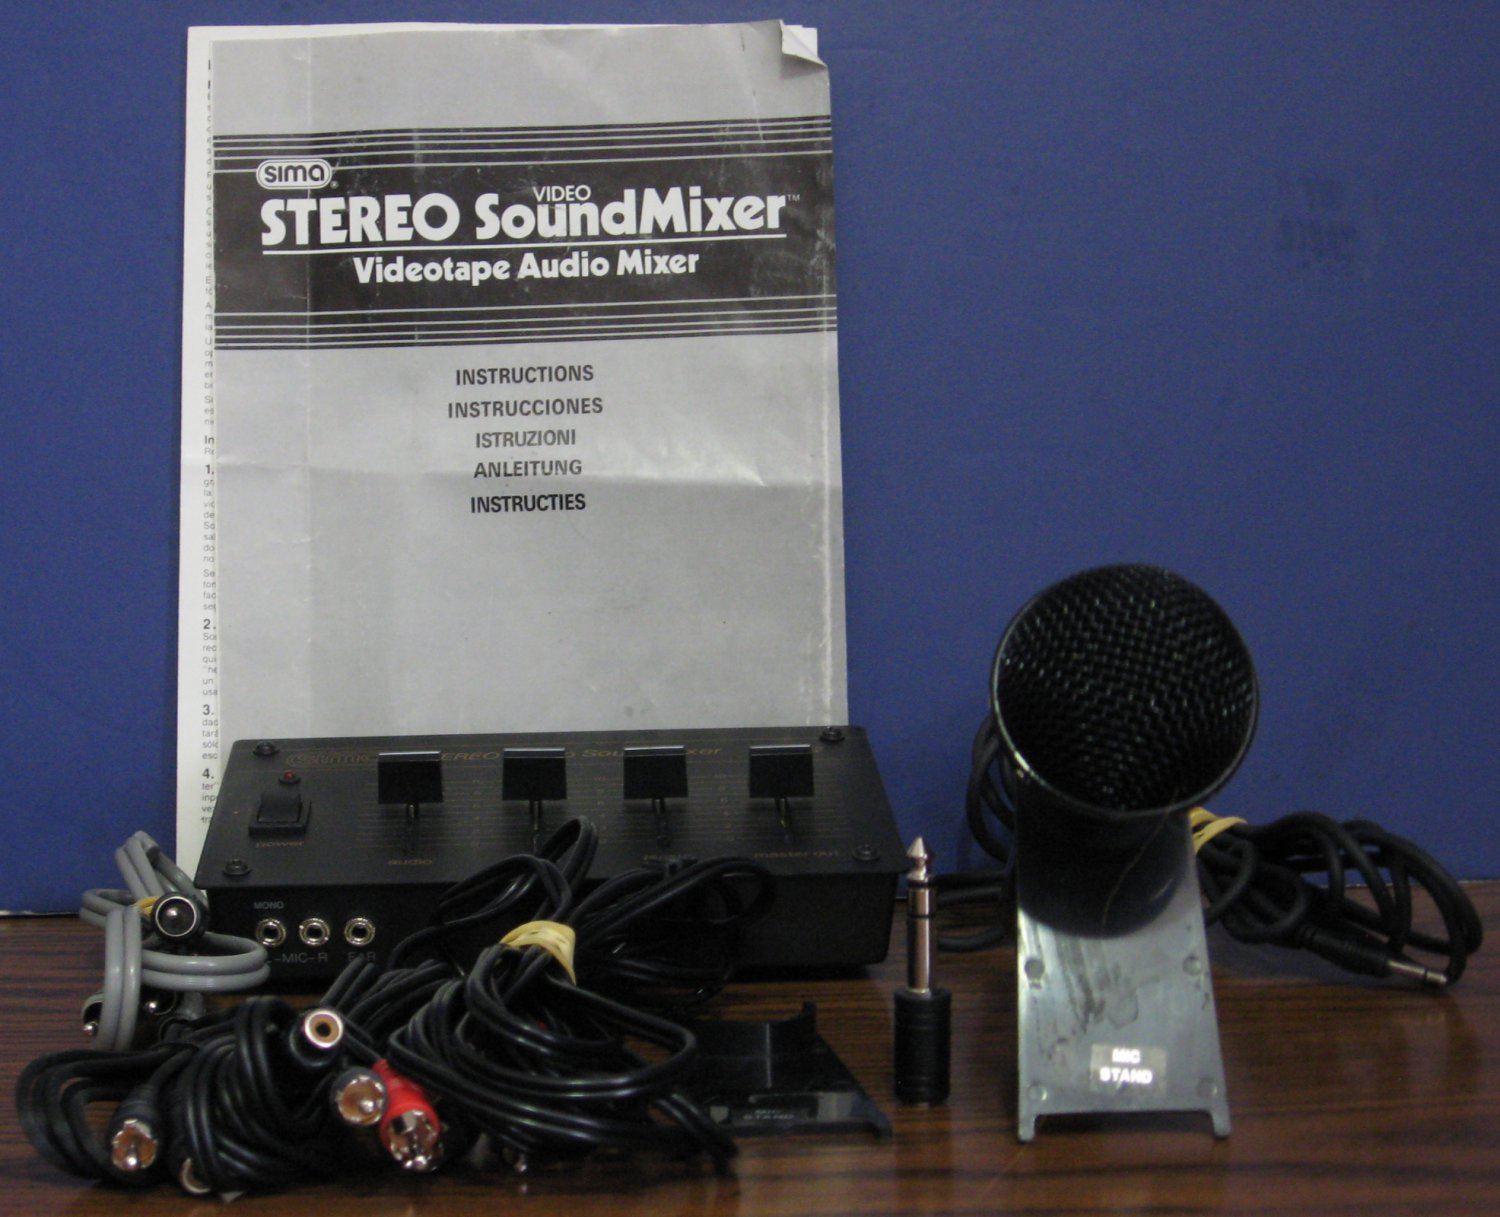 Sima Stereo Video Sound Mixer SSM-2 Bundle - With Microphone and Cables - 1989 Vintage